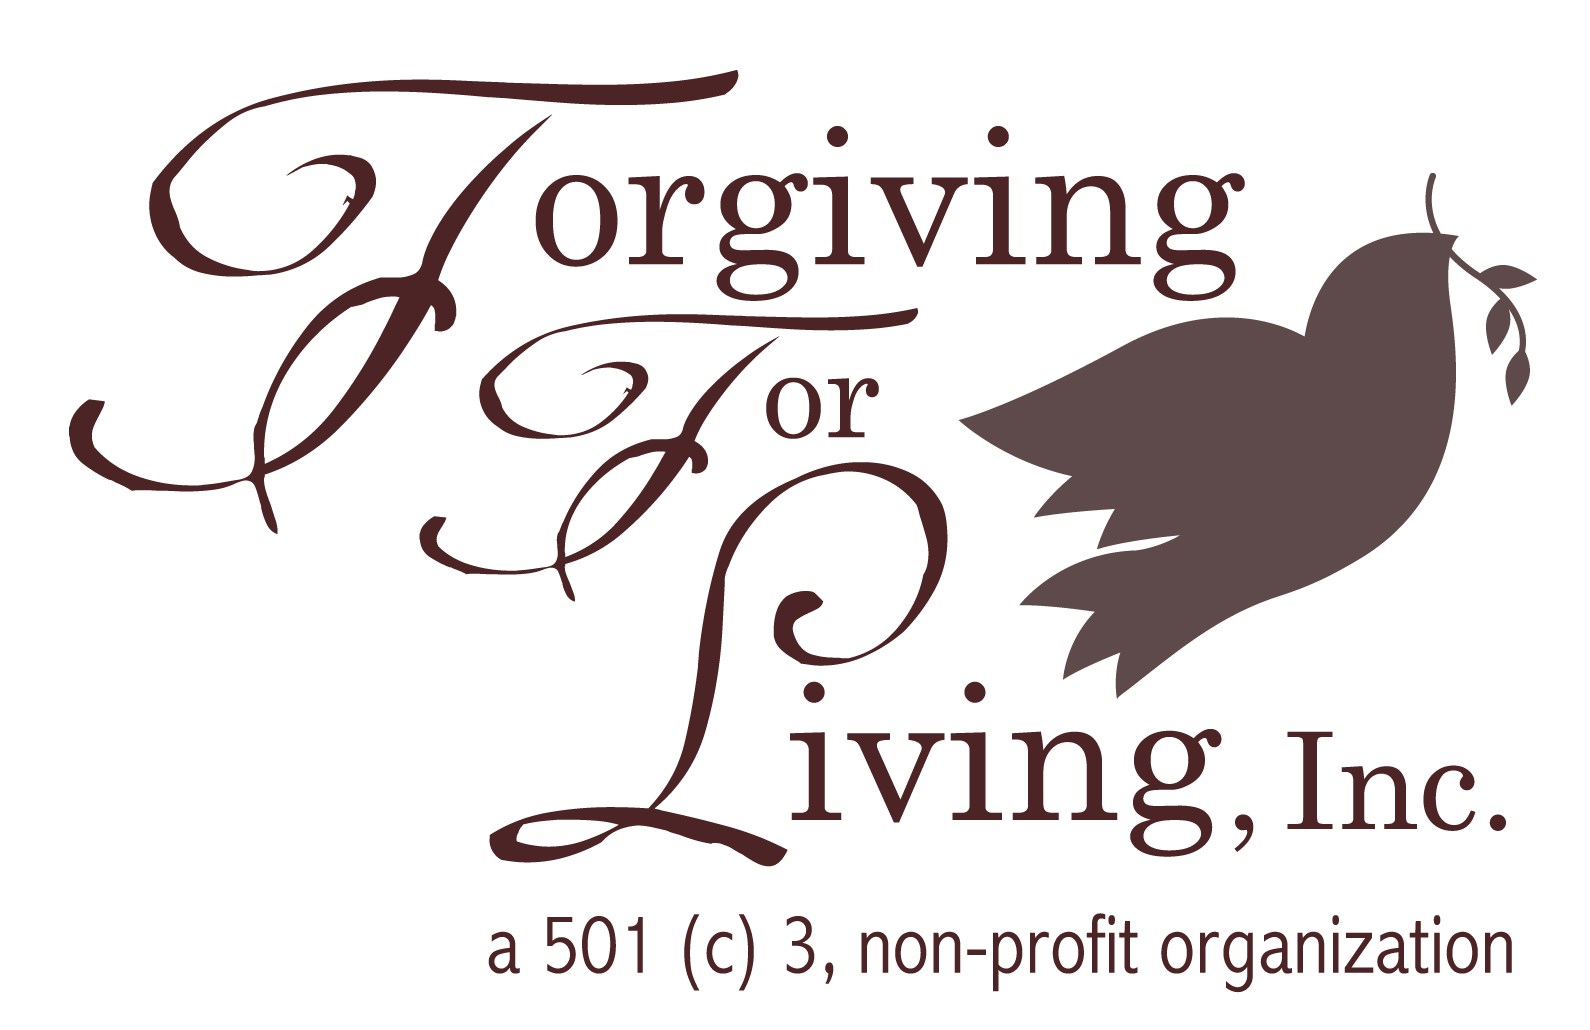 http://idreamnow.org/wp-content/uploads/2017/01/Forgiving-for-Living-1.png